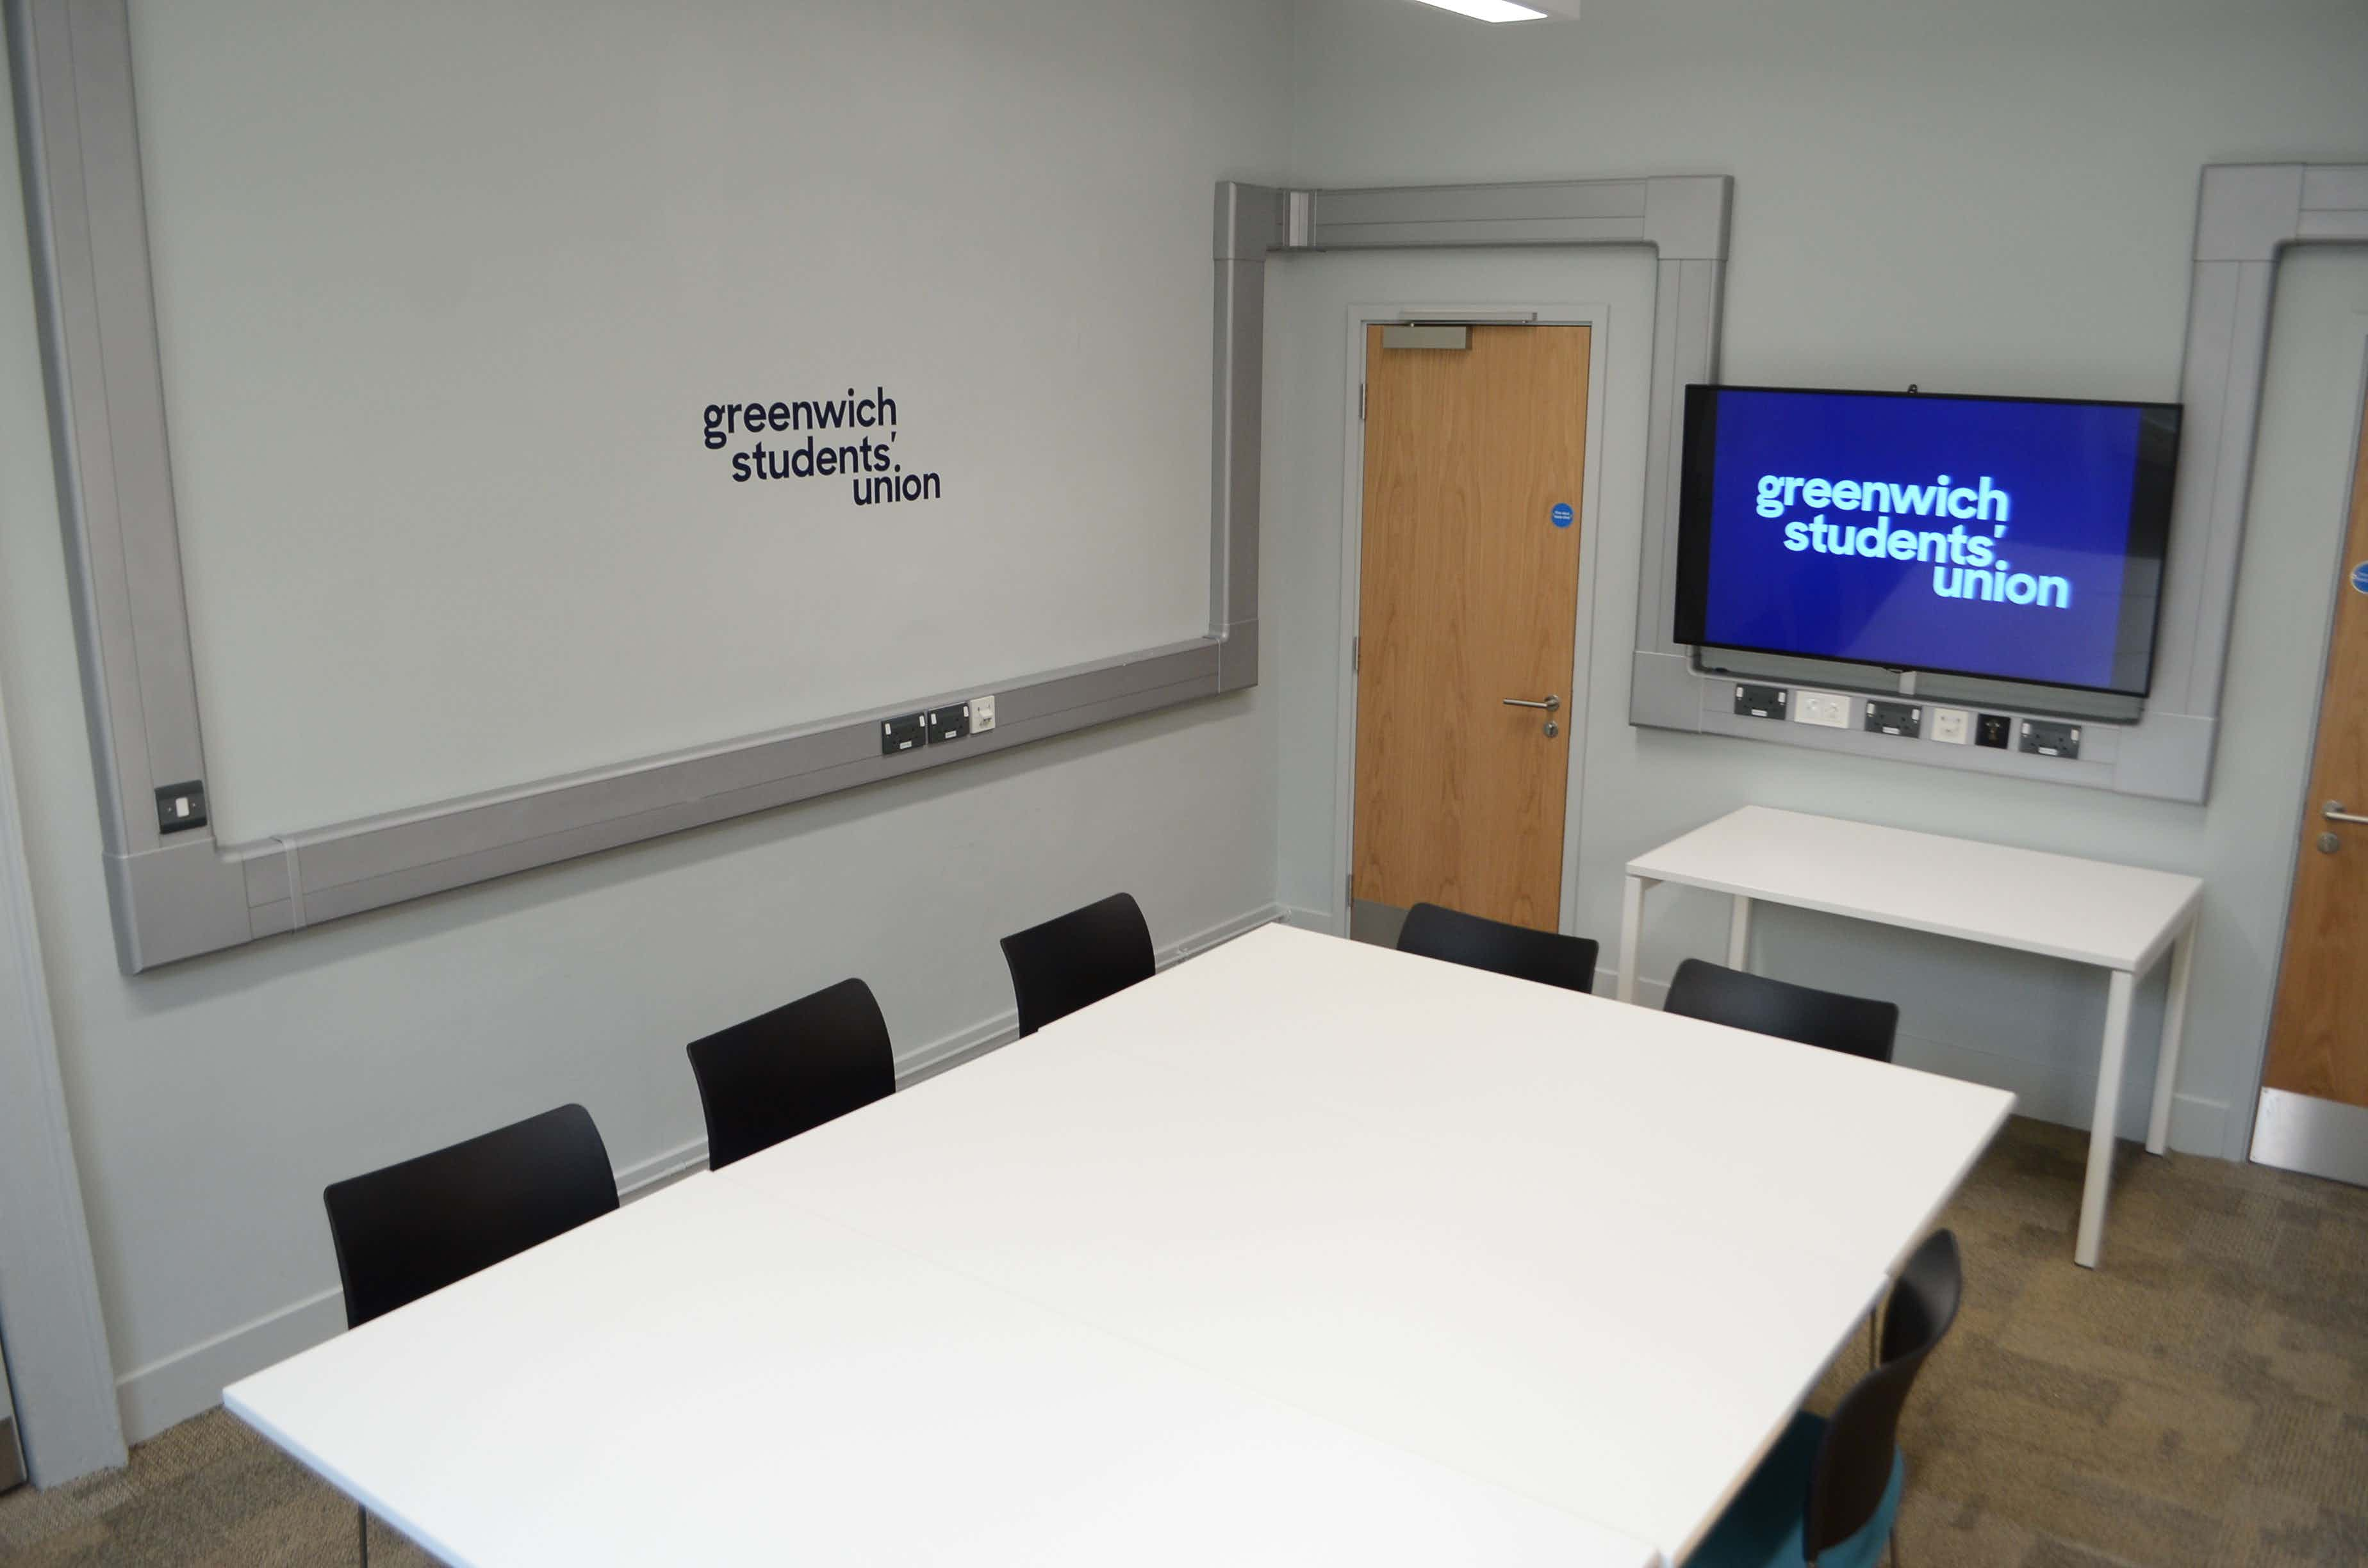 Medium Meeting Room, Dreadnought Building